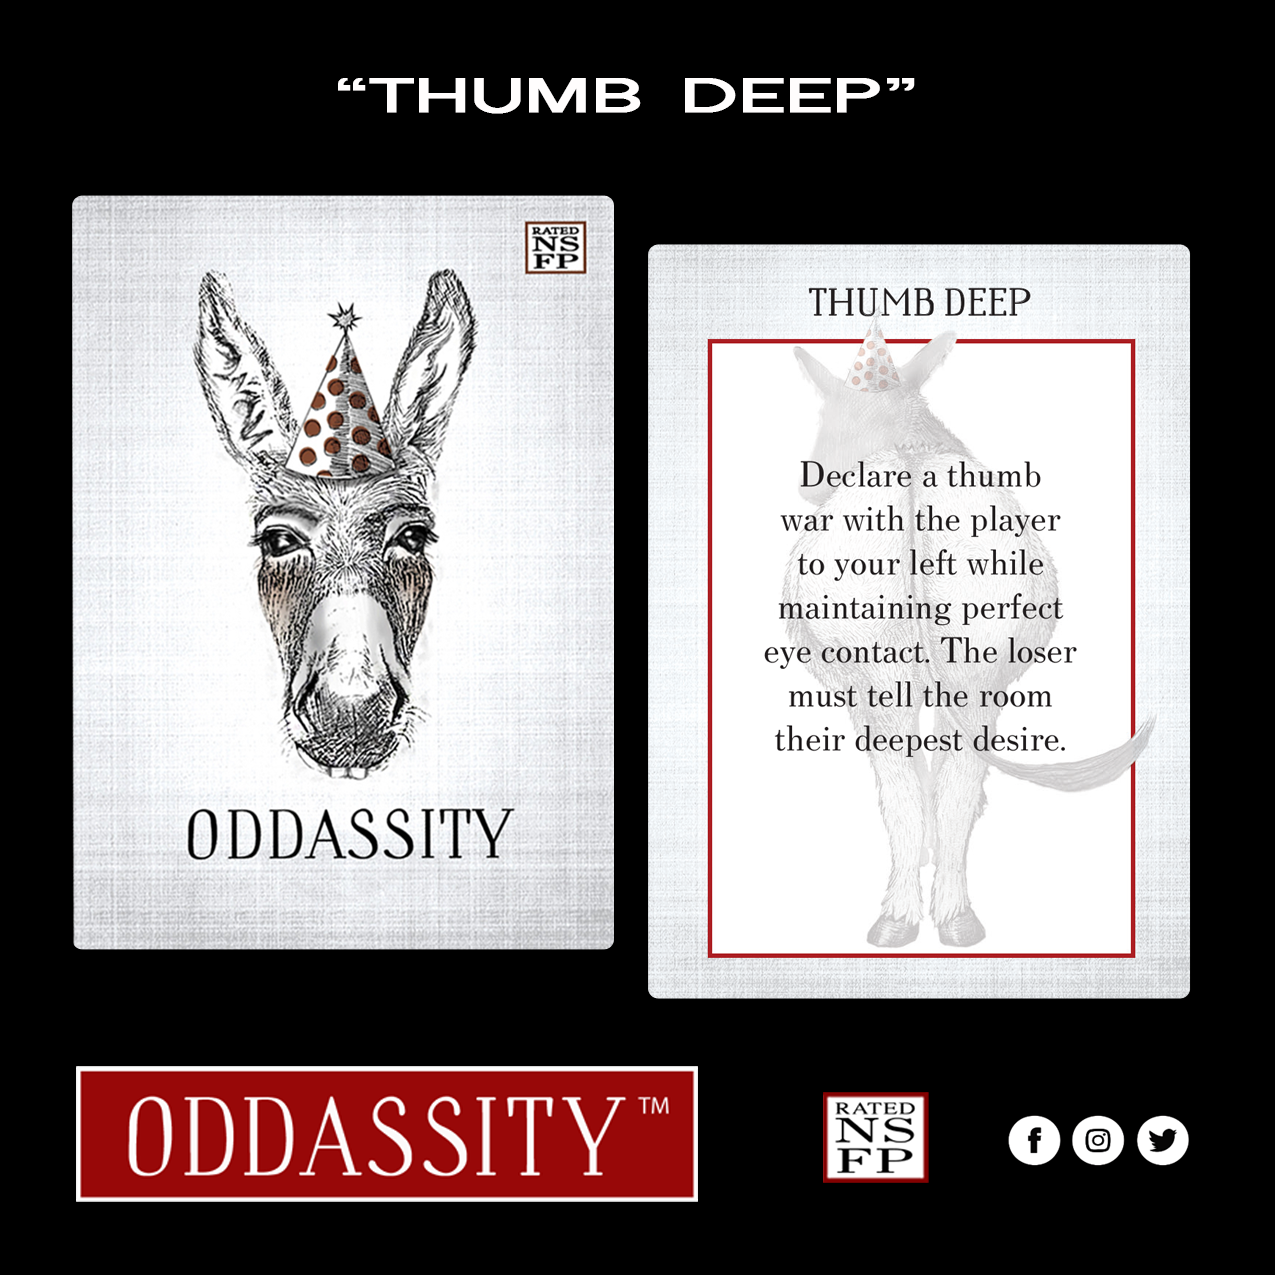 THUMB DEEP   Declare a Thumb War with the player to your left while maintaining perfect eye contact. The loser must tell the room their deepest desire.